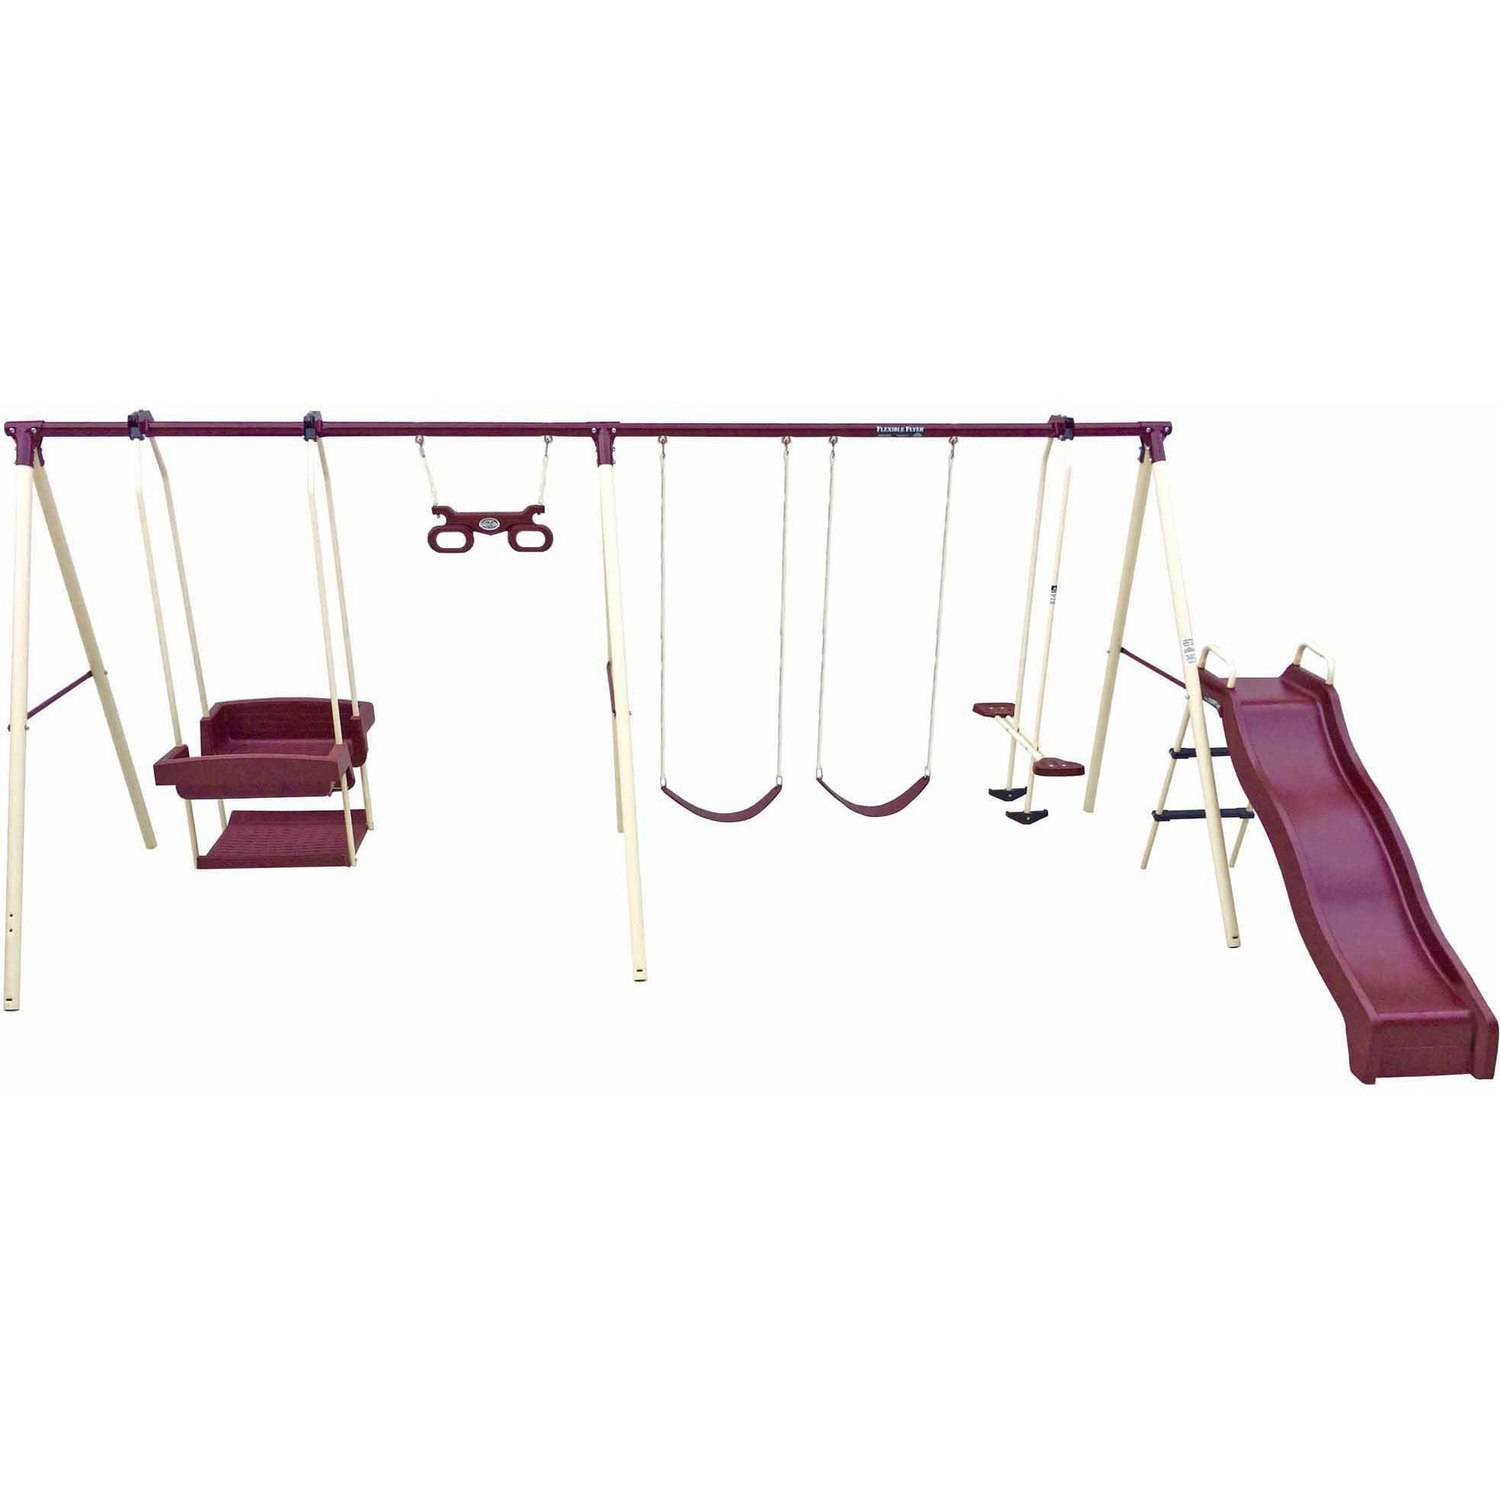 Flexible Flyer Play Park Metal Swing Set   Walmart.com